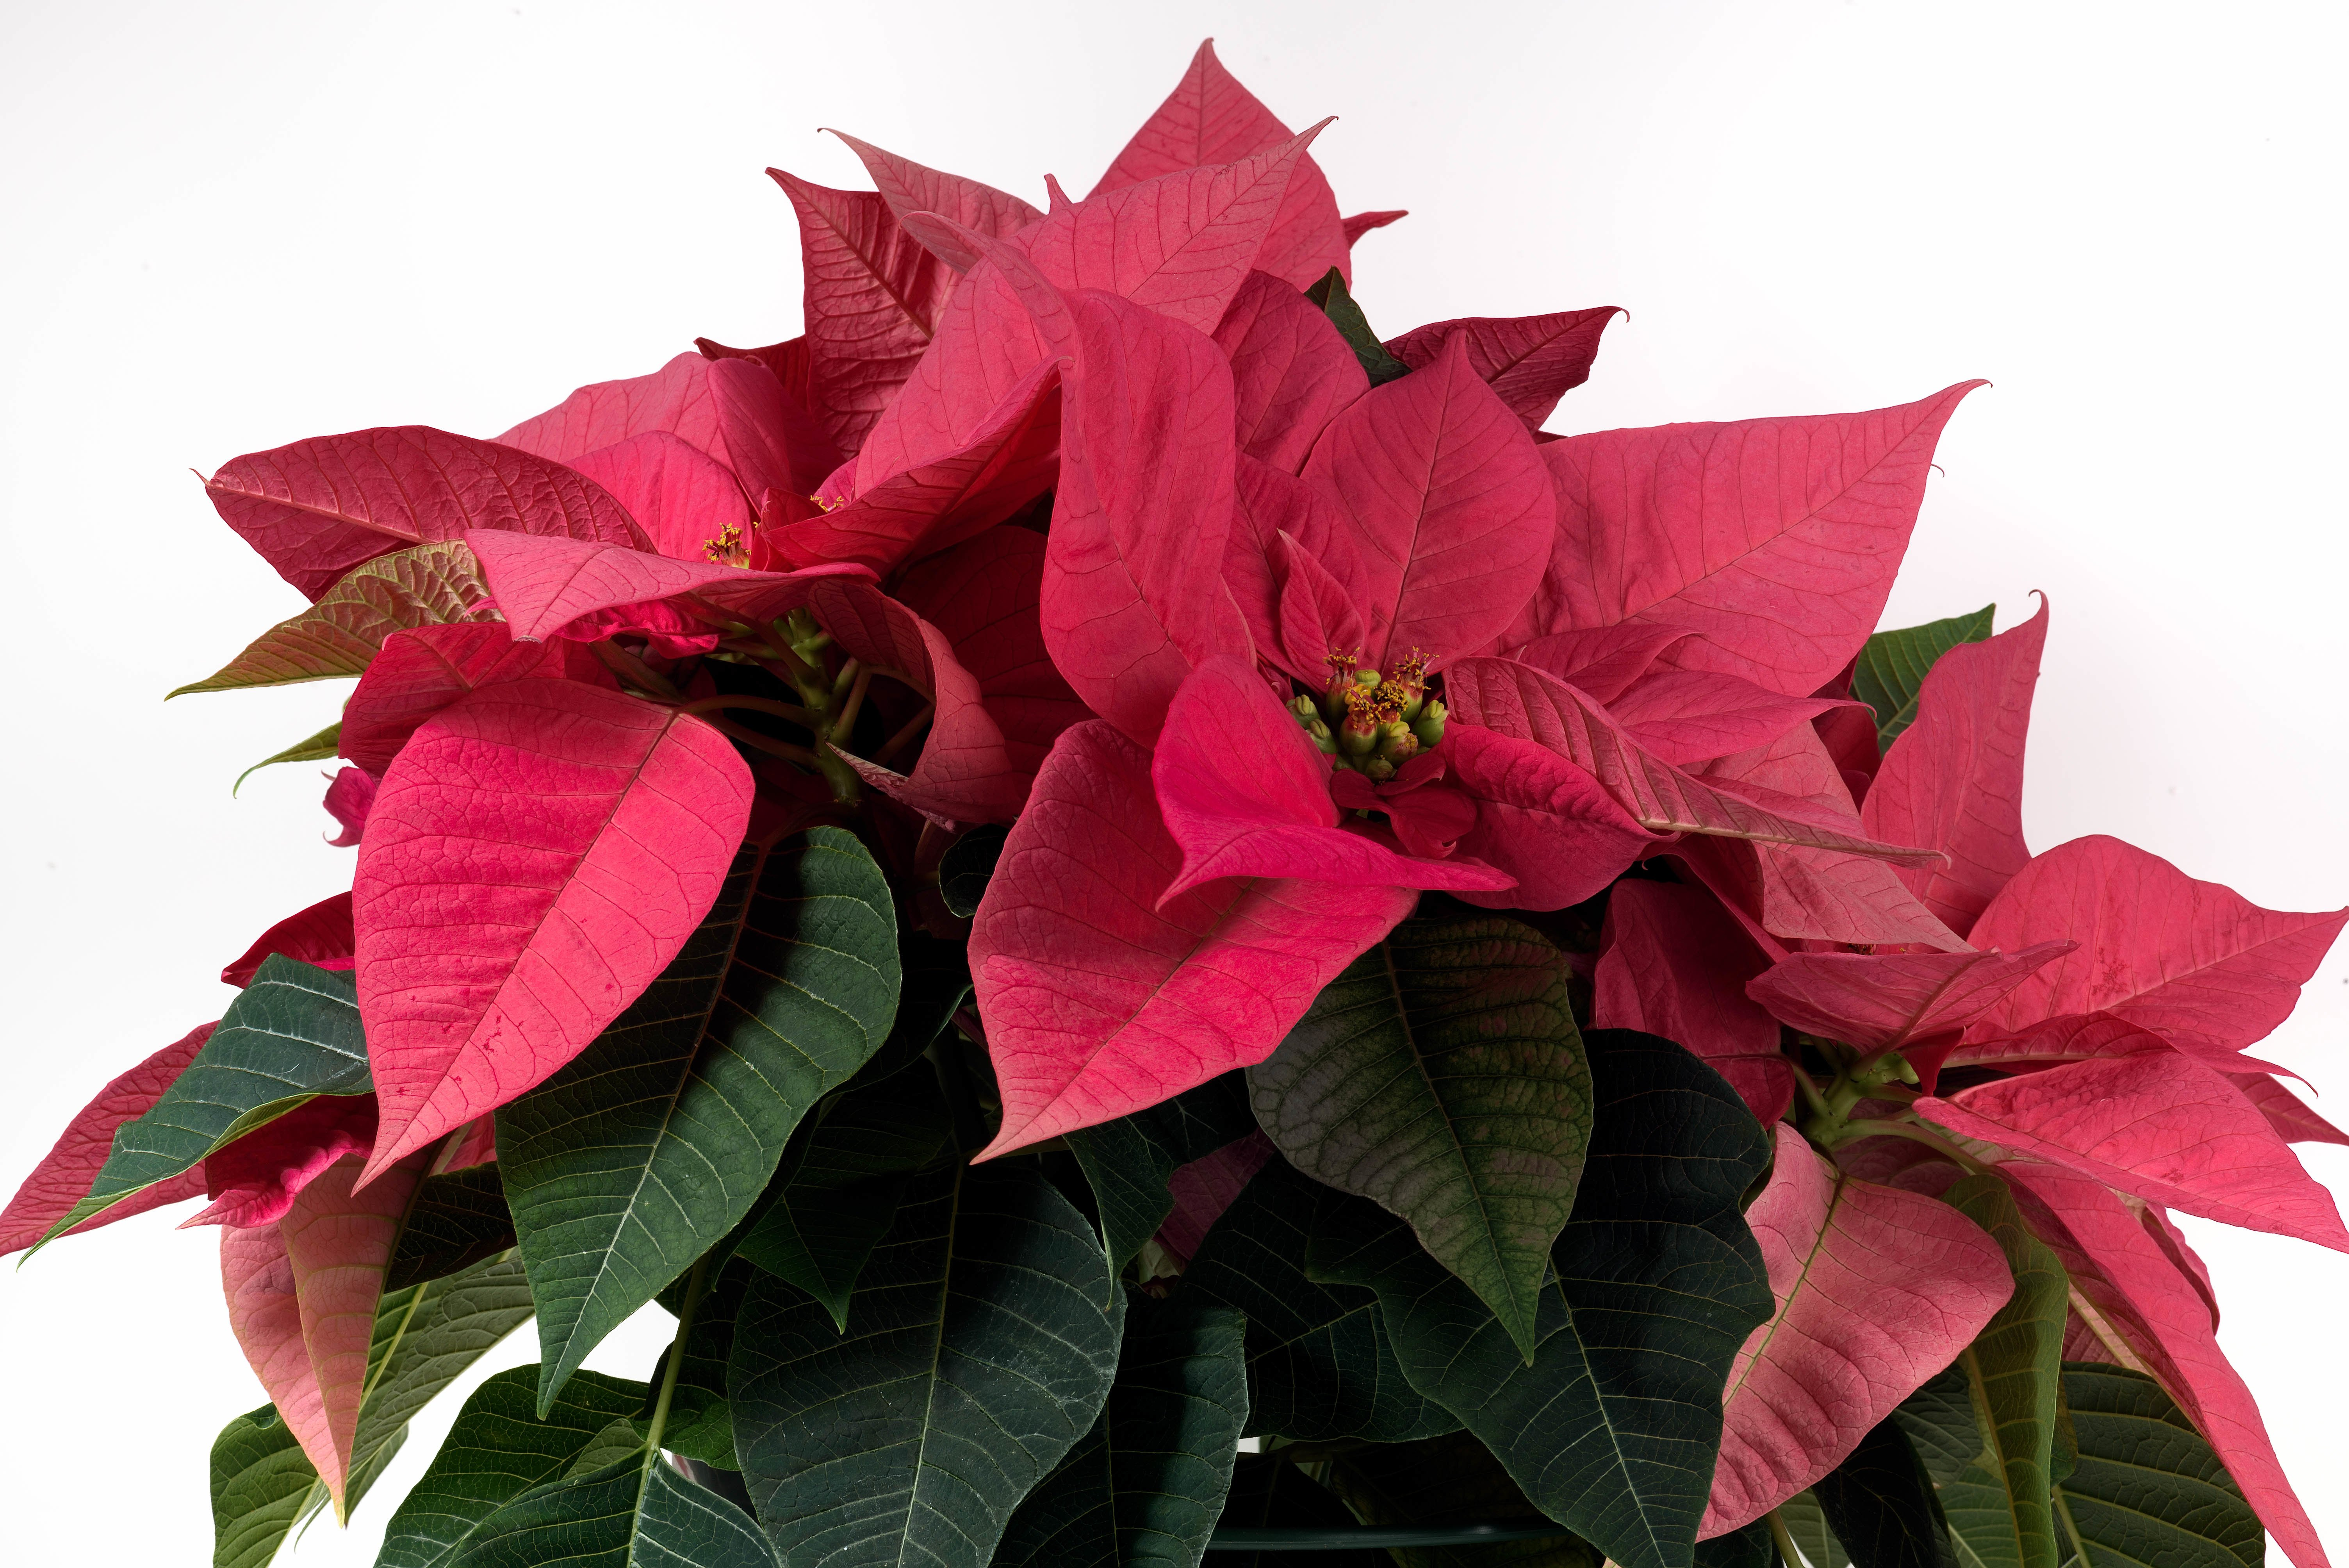 Why Poinsettias are associated with Christmas